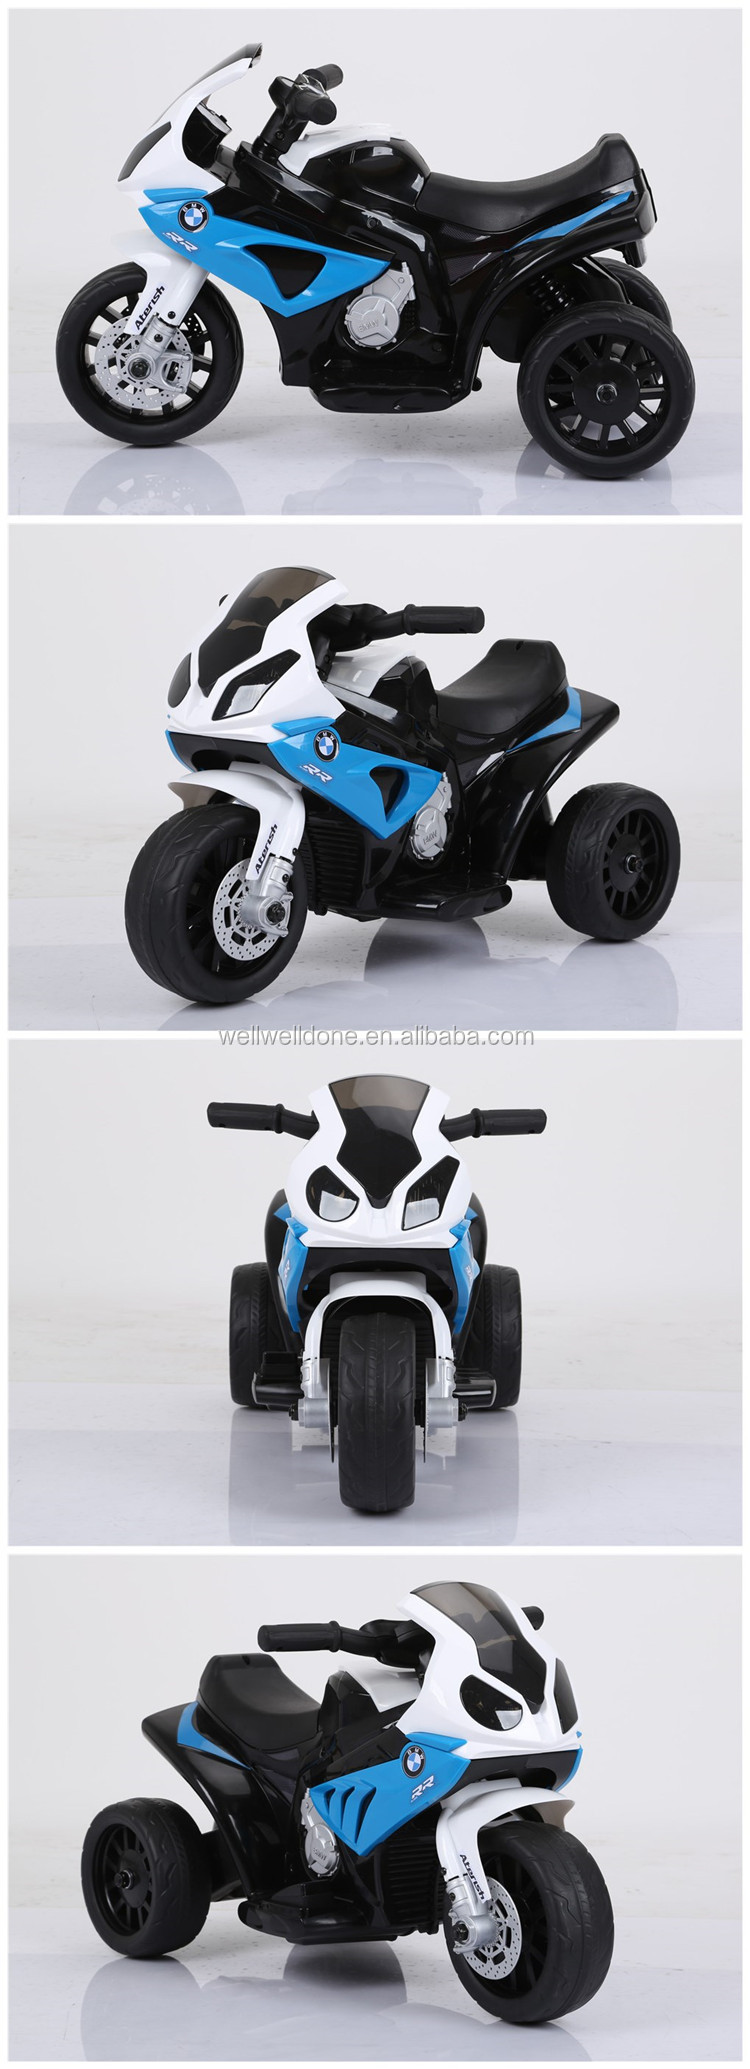 WDJT5188 Cool Design Kids Licensed BMW Motorcycles Scooters With Music